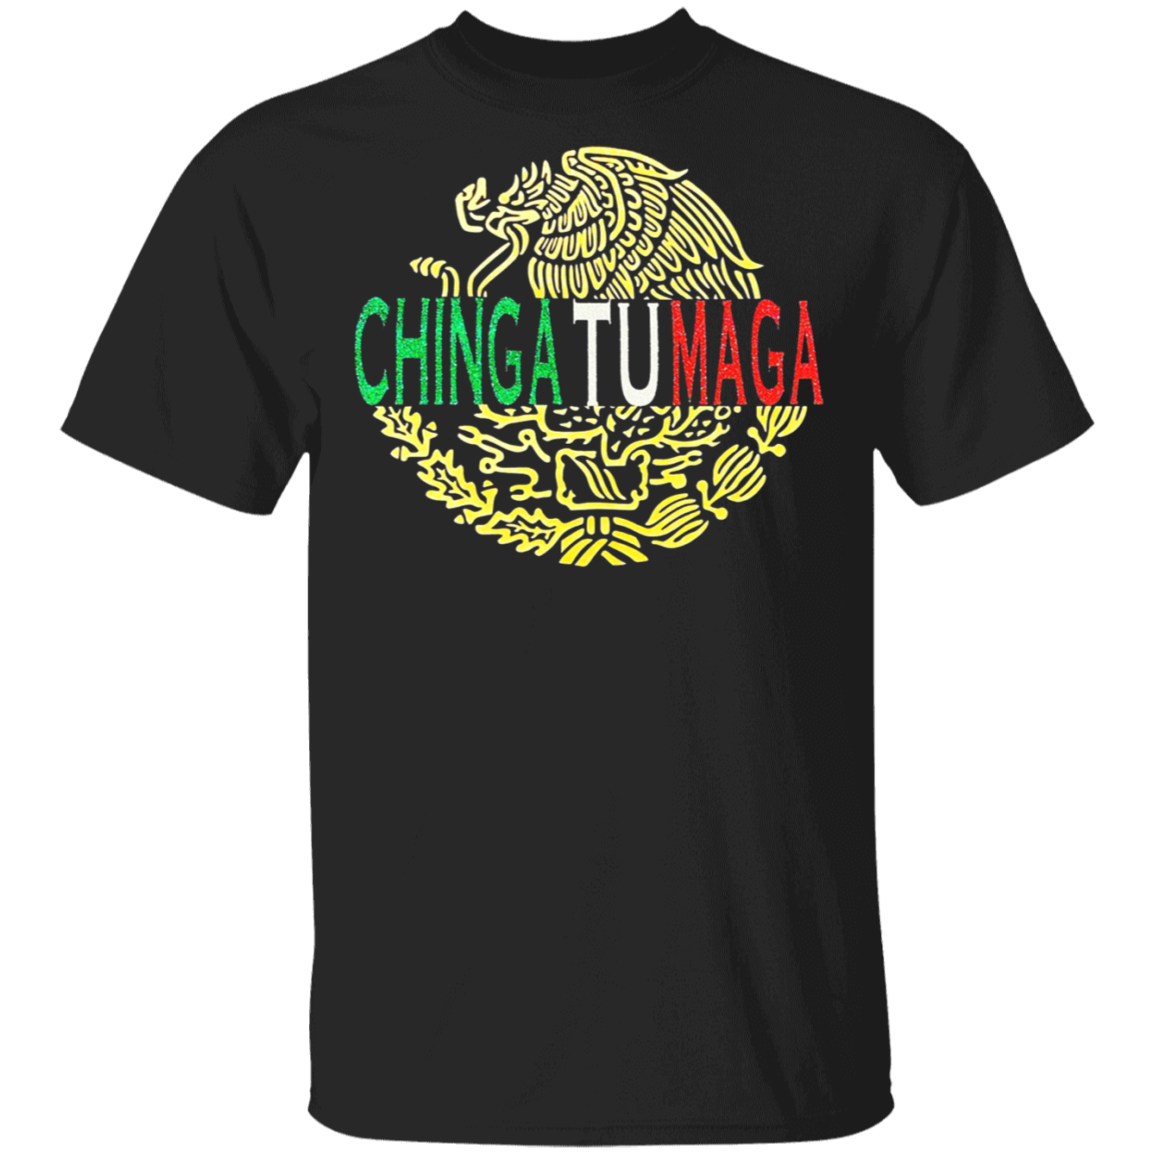 Eagle Mexican Chingatumaga Shirt Fuck Donald Trump T-Shirt Funny Political